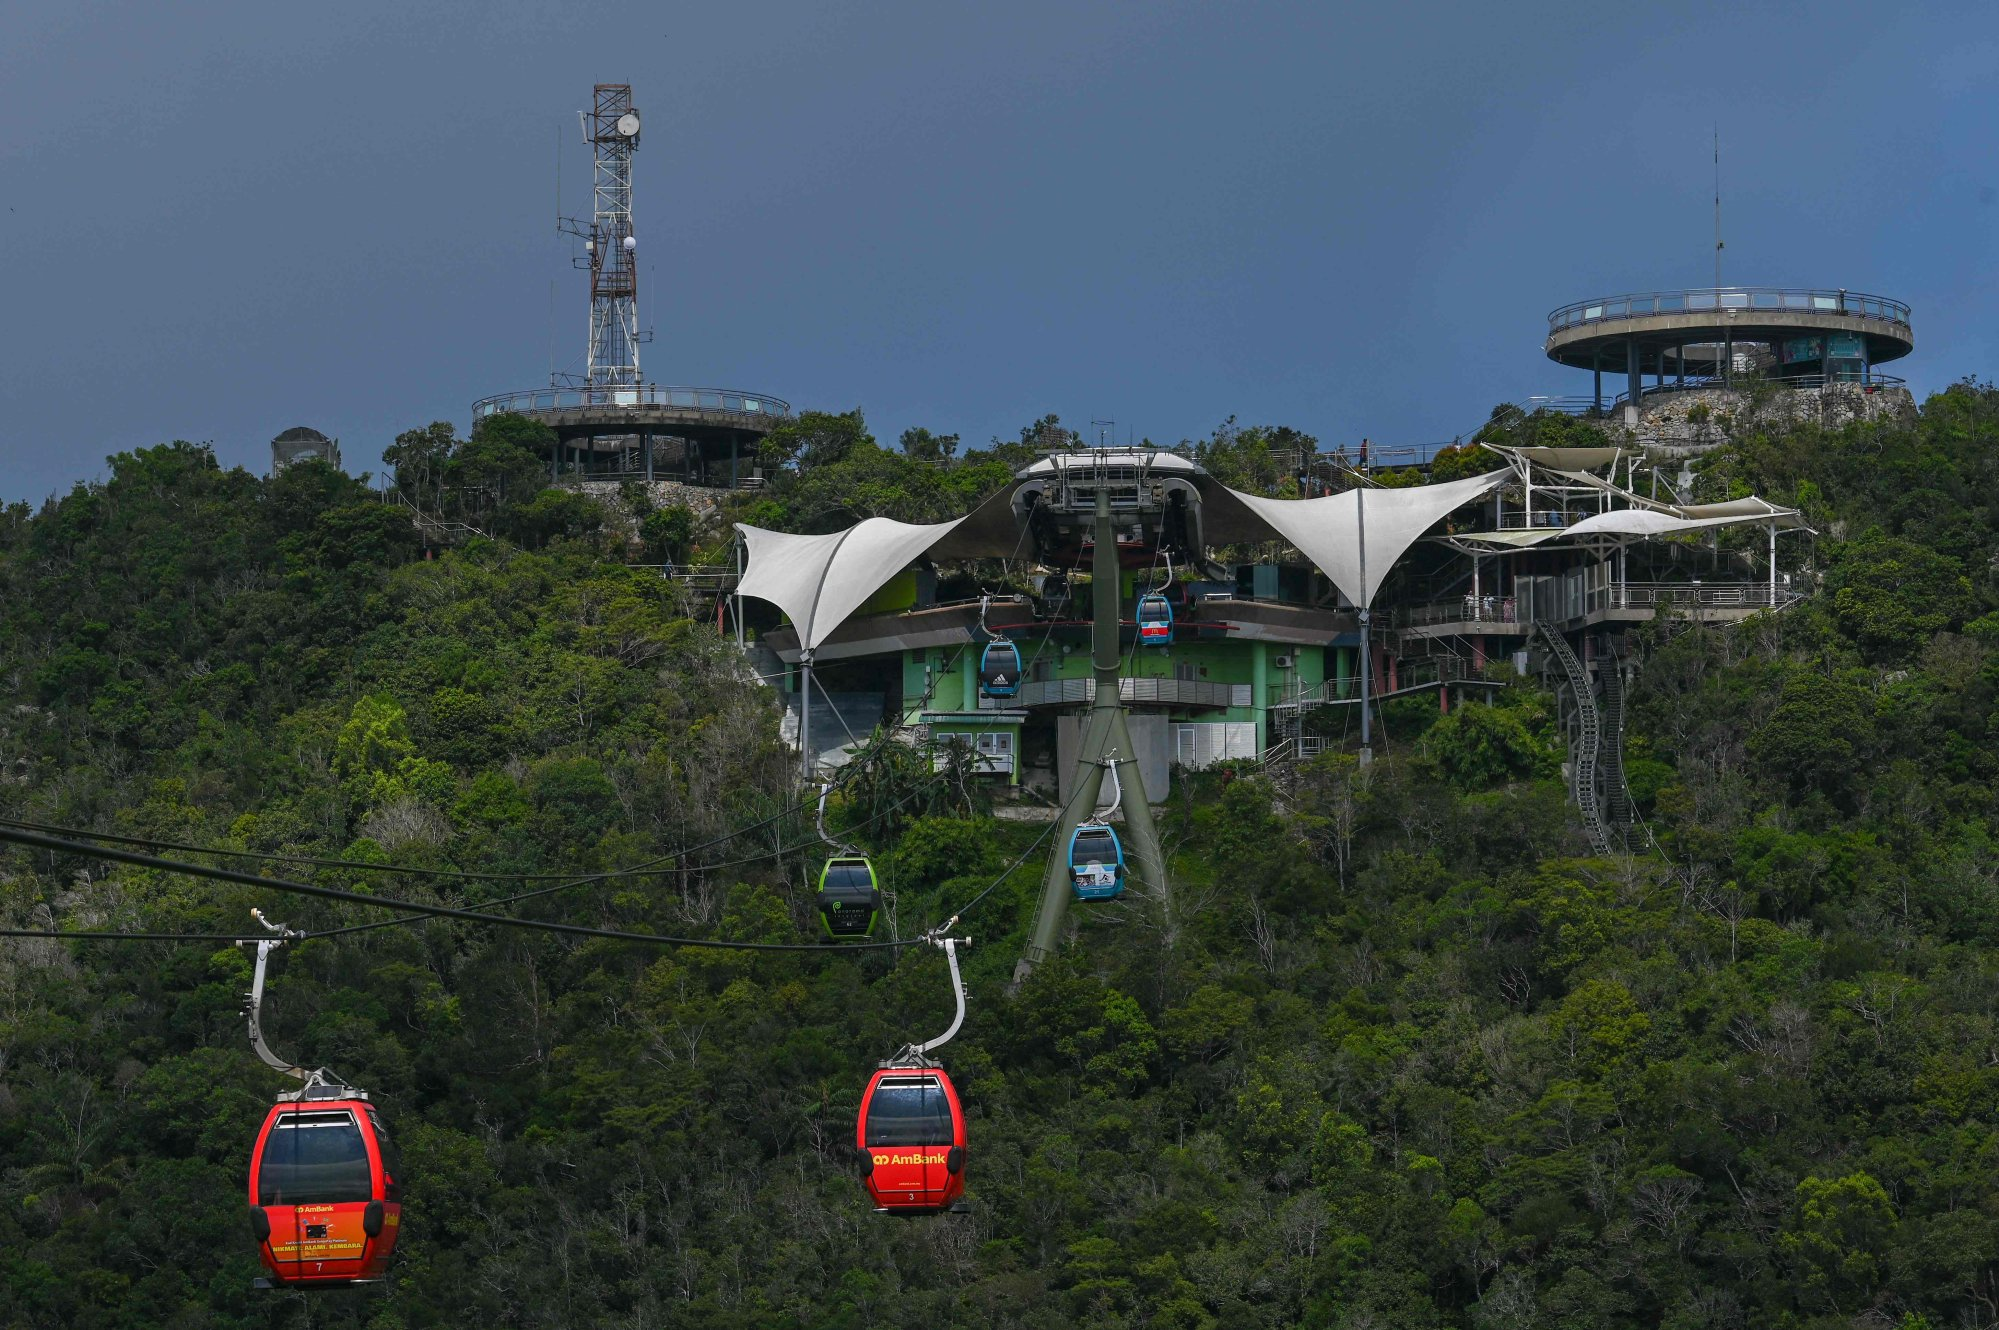 Langkawi Skycab cable cars in operation. Photo: AFP